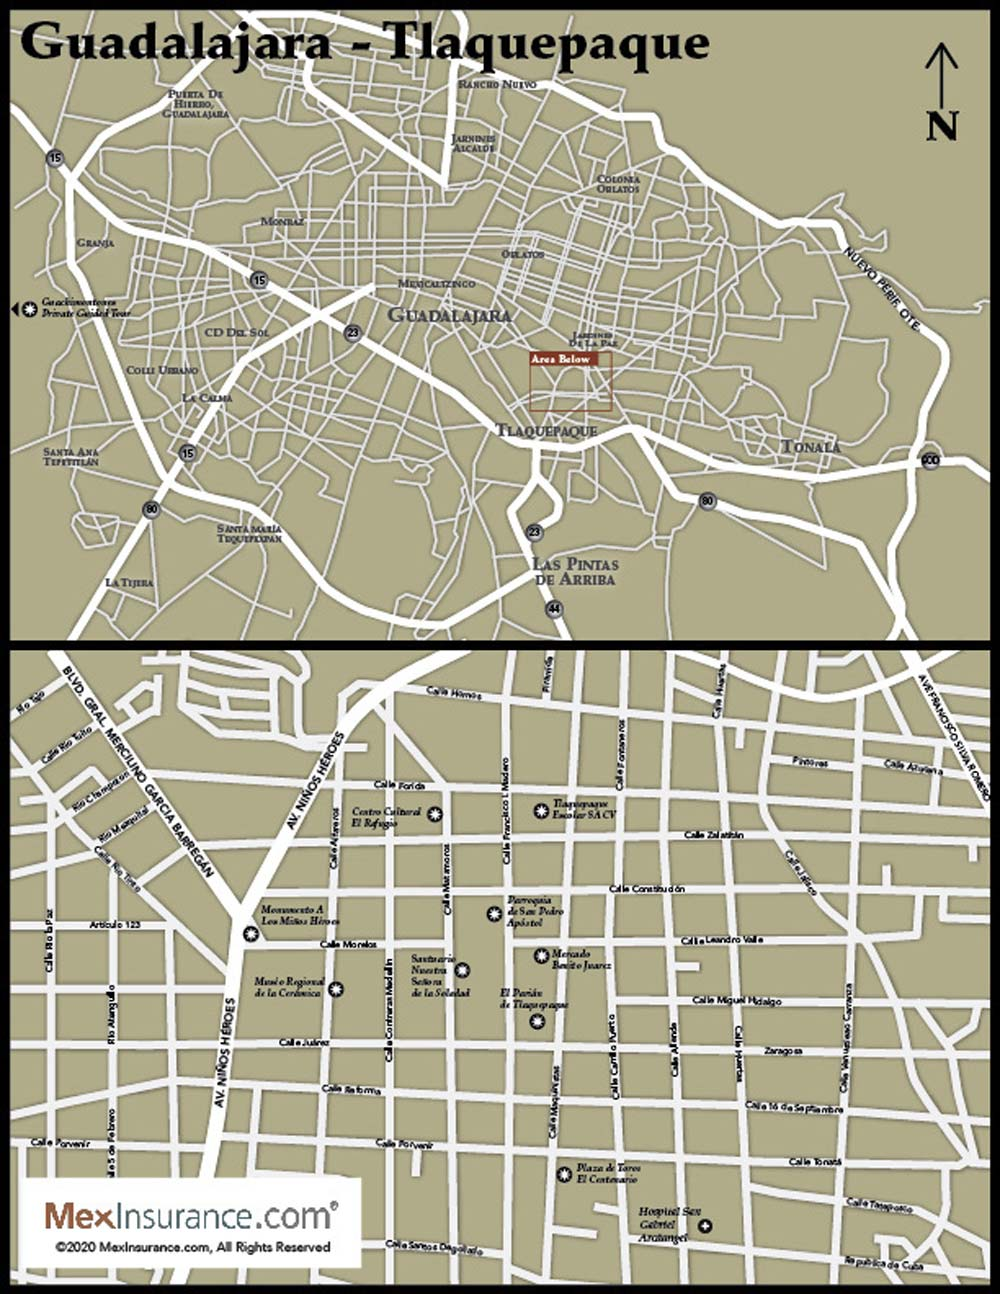 Map of Tlaquepaque - Guadalajar in Mexico (Jalisco)